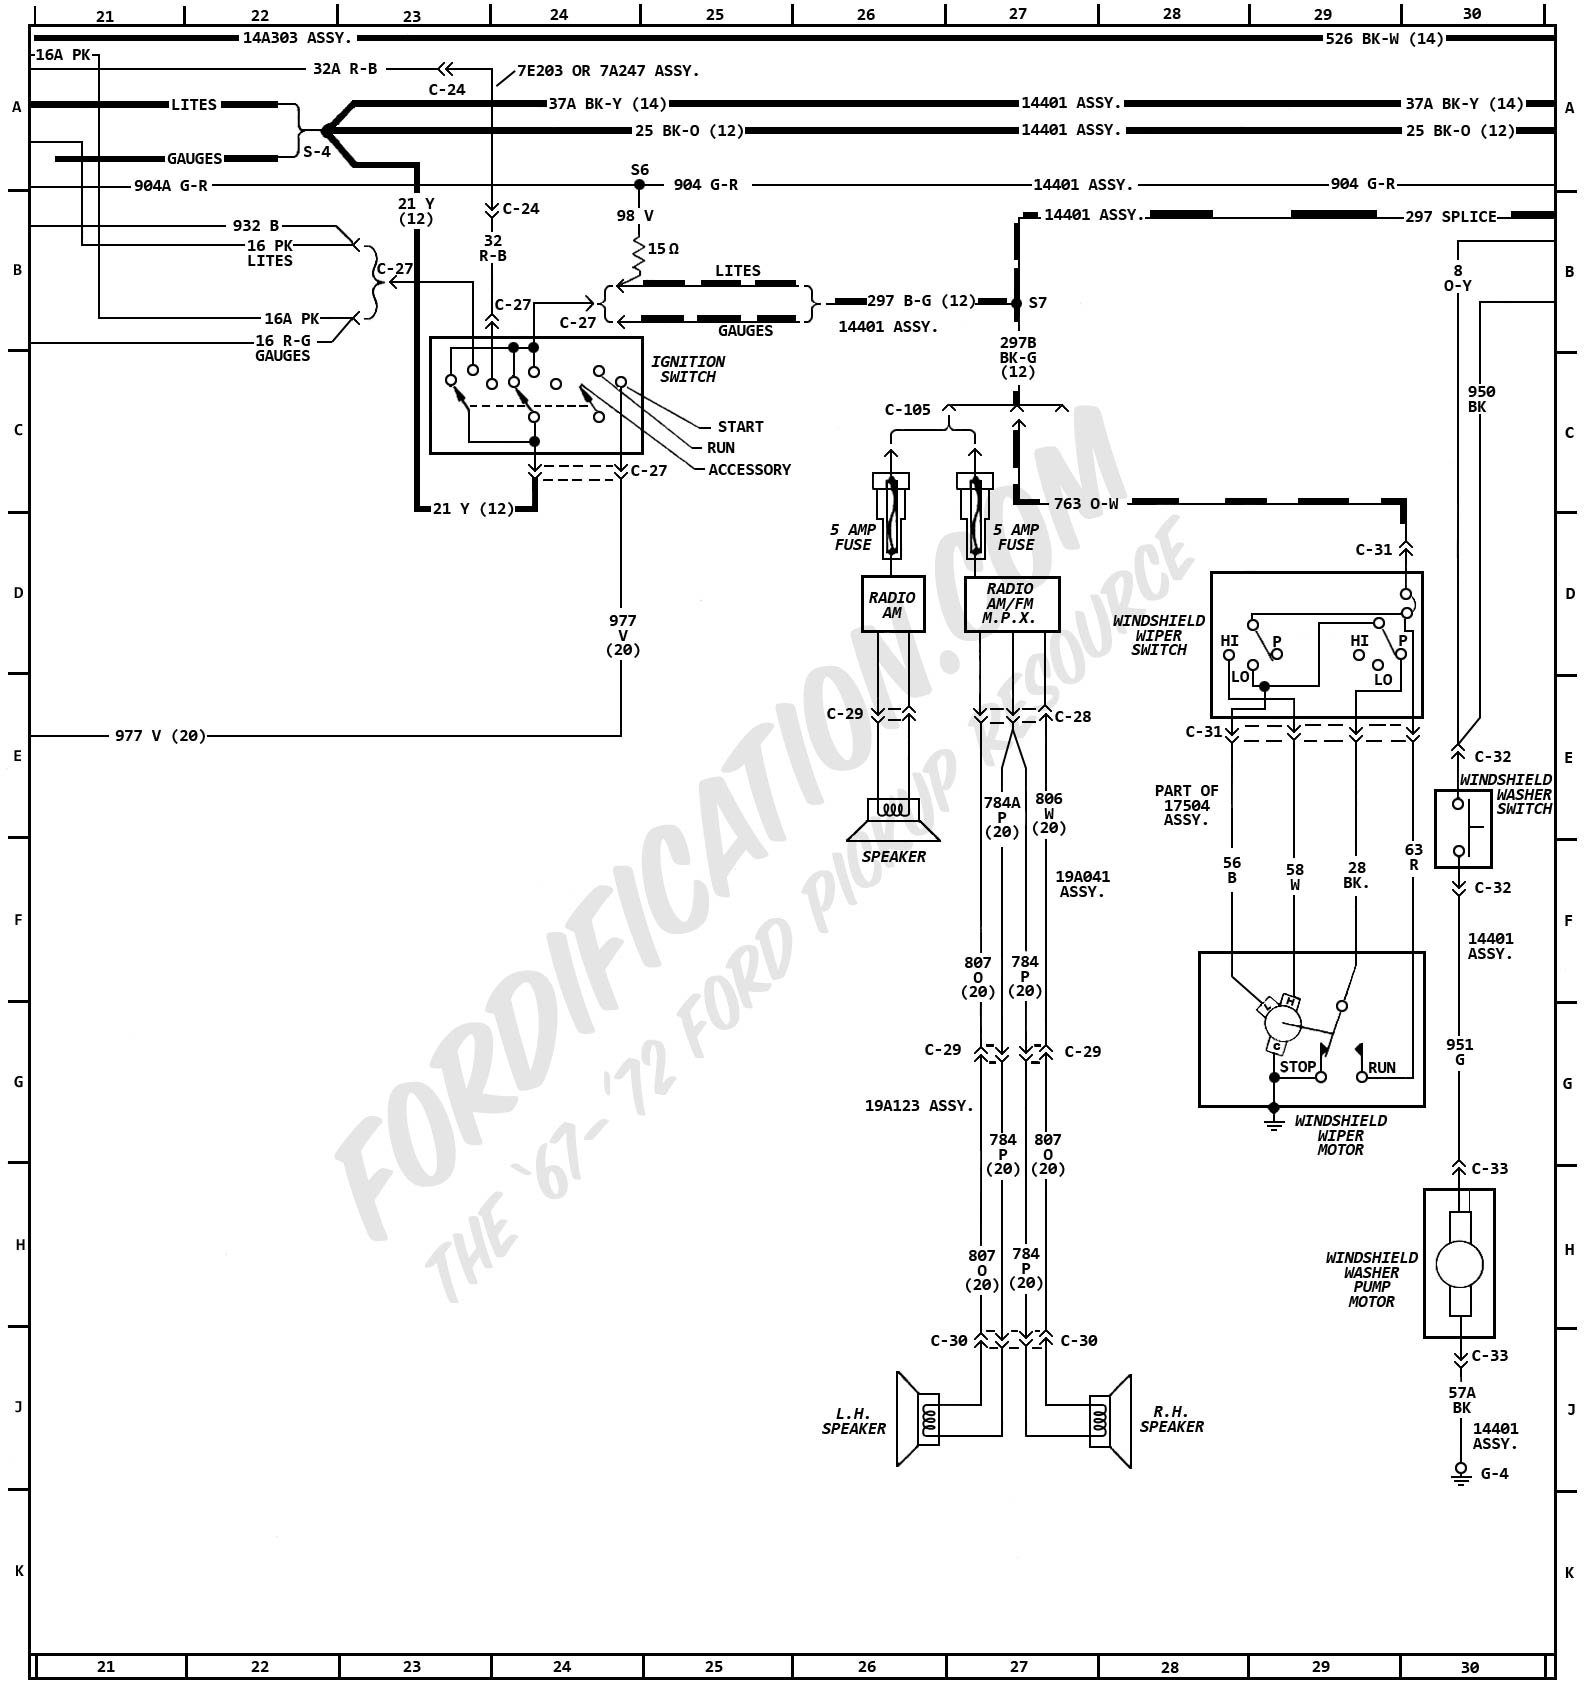 wiring diagram for ford l wiring diagram for ford 1990 ford l8000 wiring diagram 1990 automotive wiring diagram